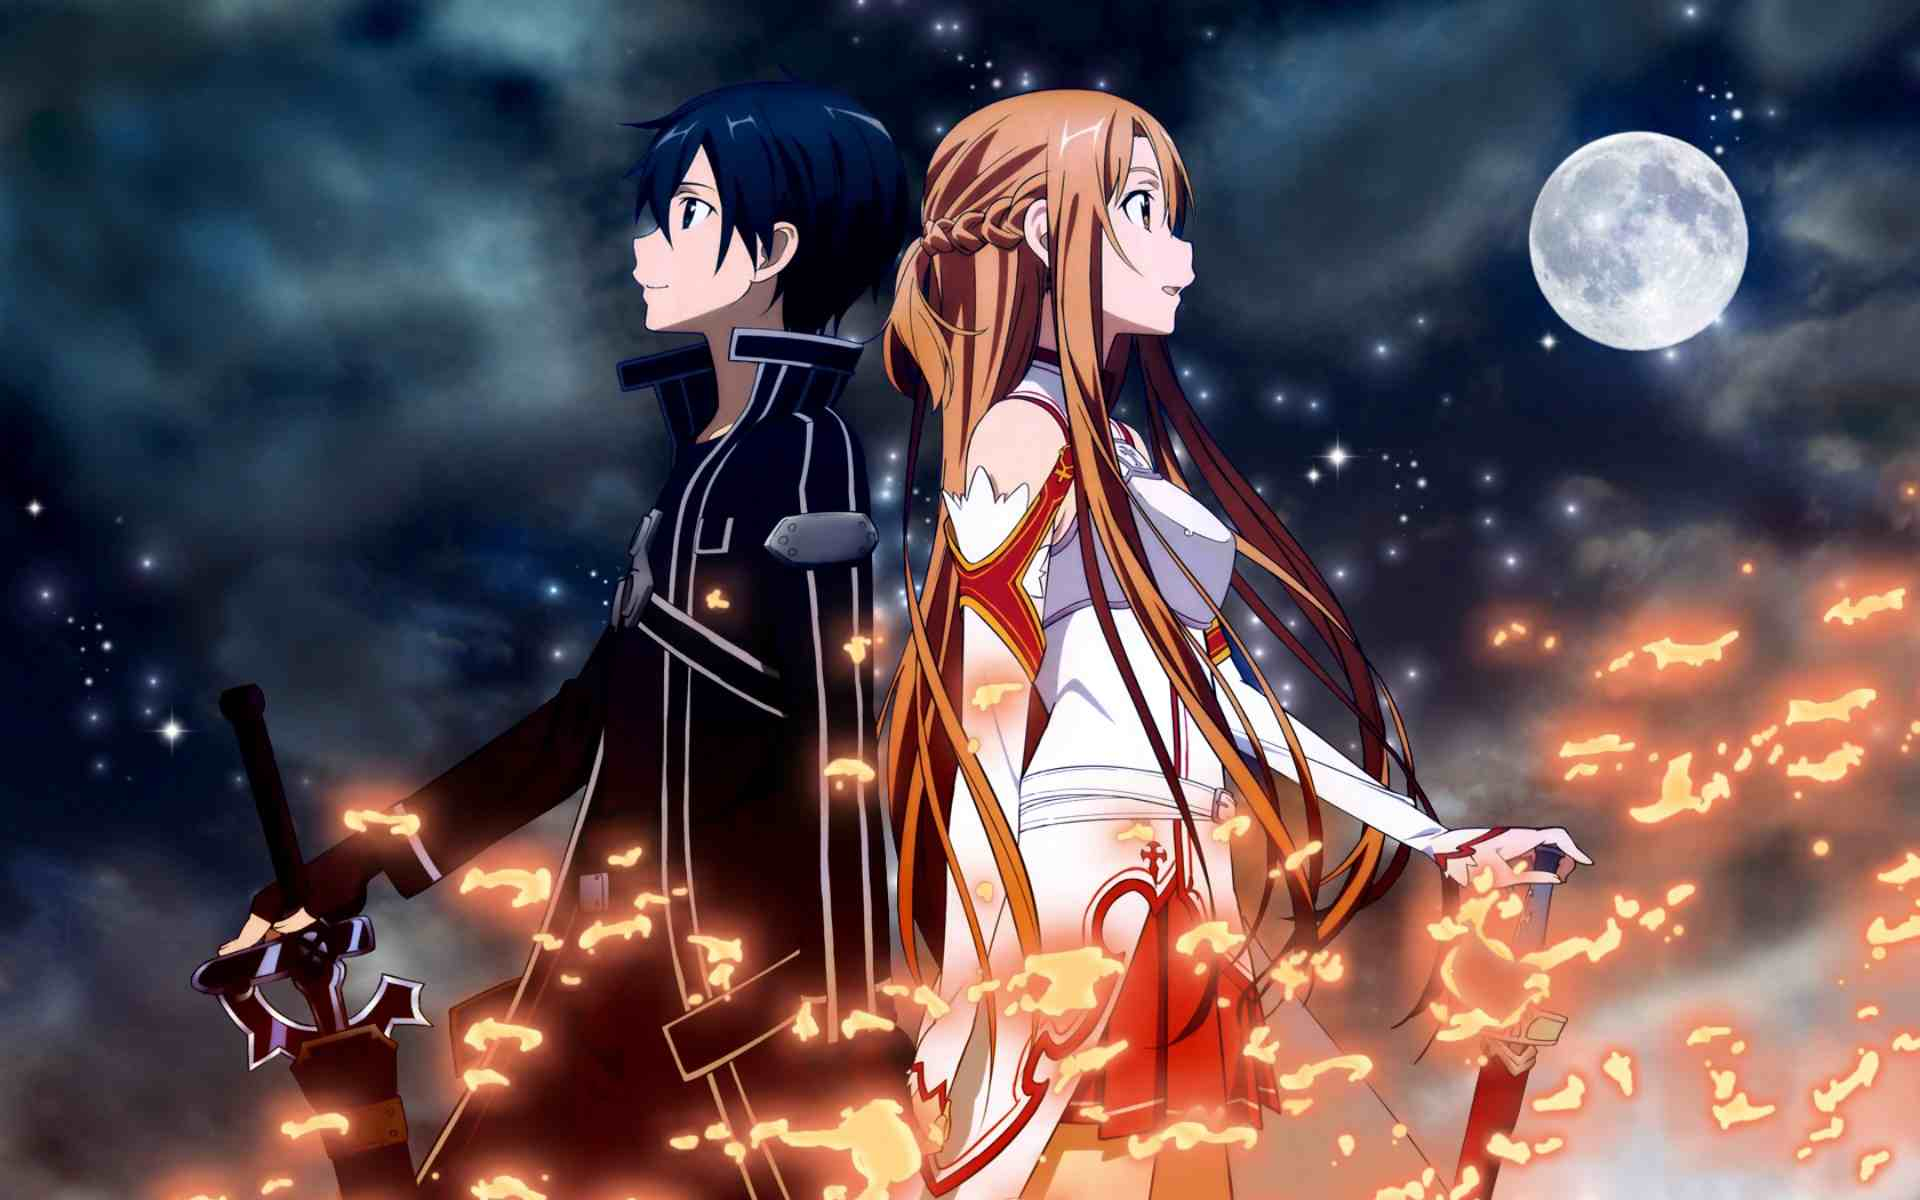 Anime Franchise Sword Art Online Spawns Live-Action TV Series At Skydance